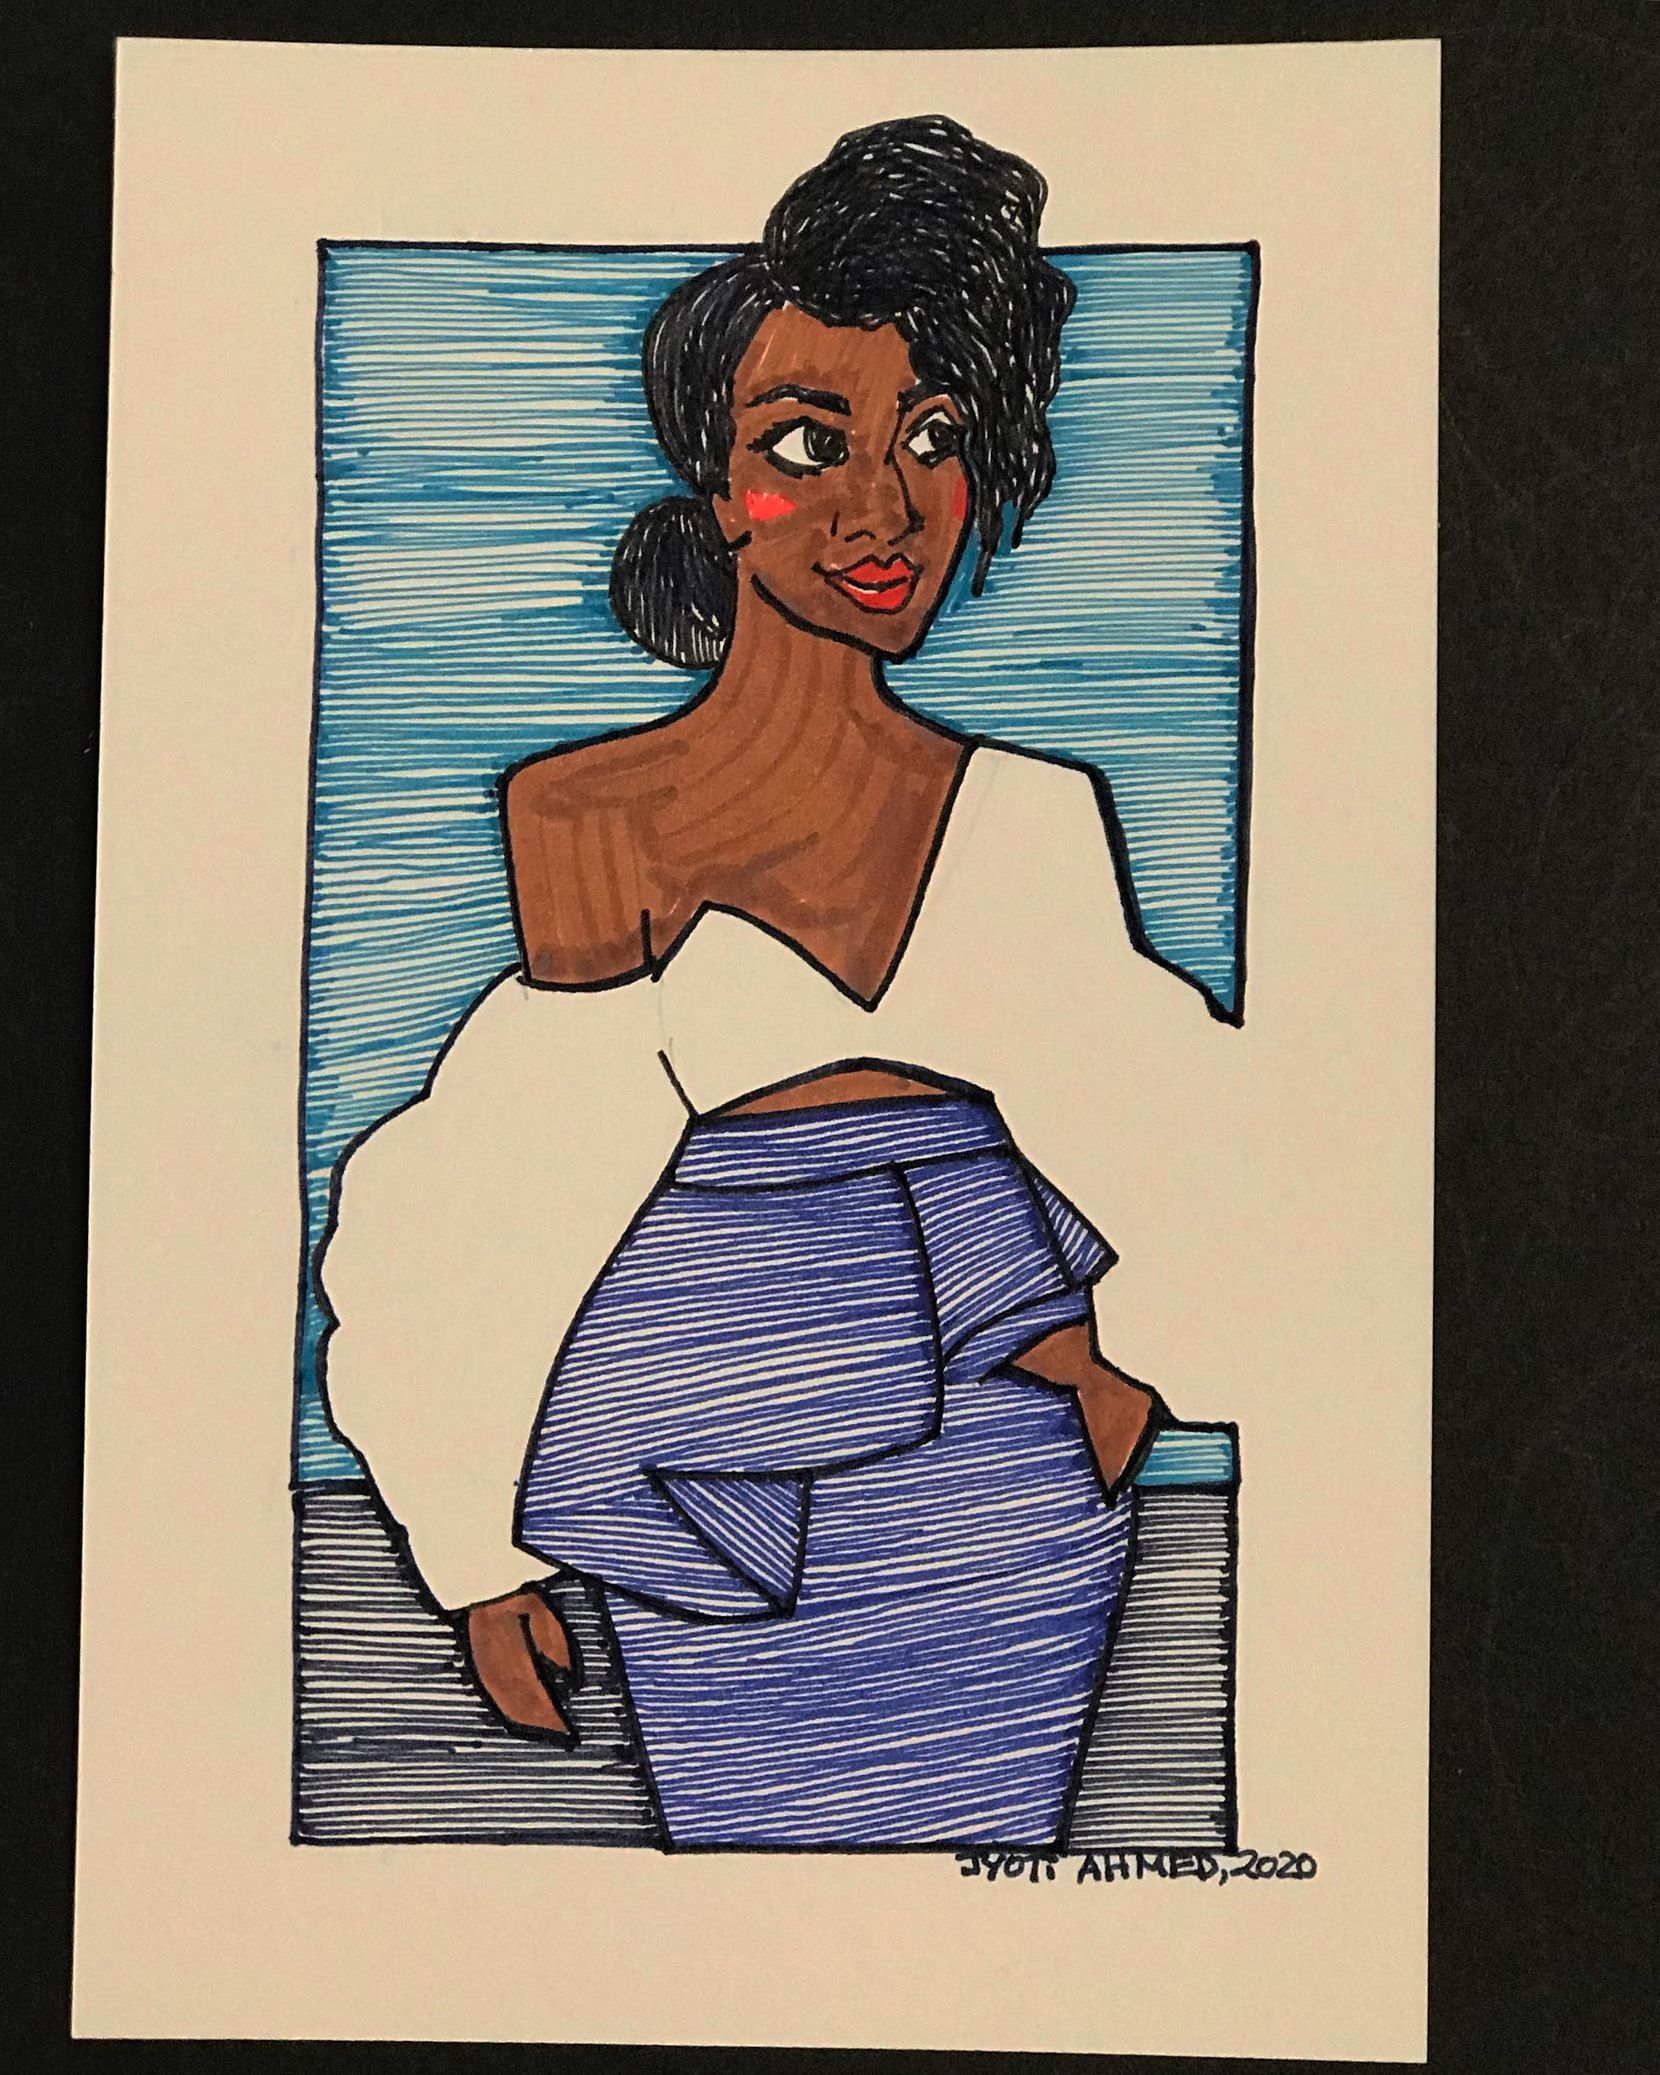 During the pandemic, Jyoti Ahmed began sending hand-drawn cards to people who need some encouragement.